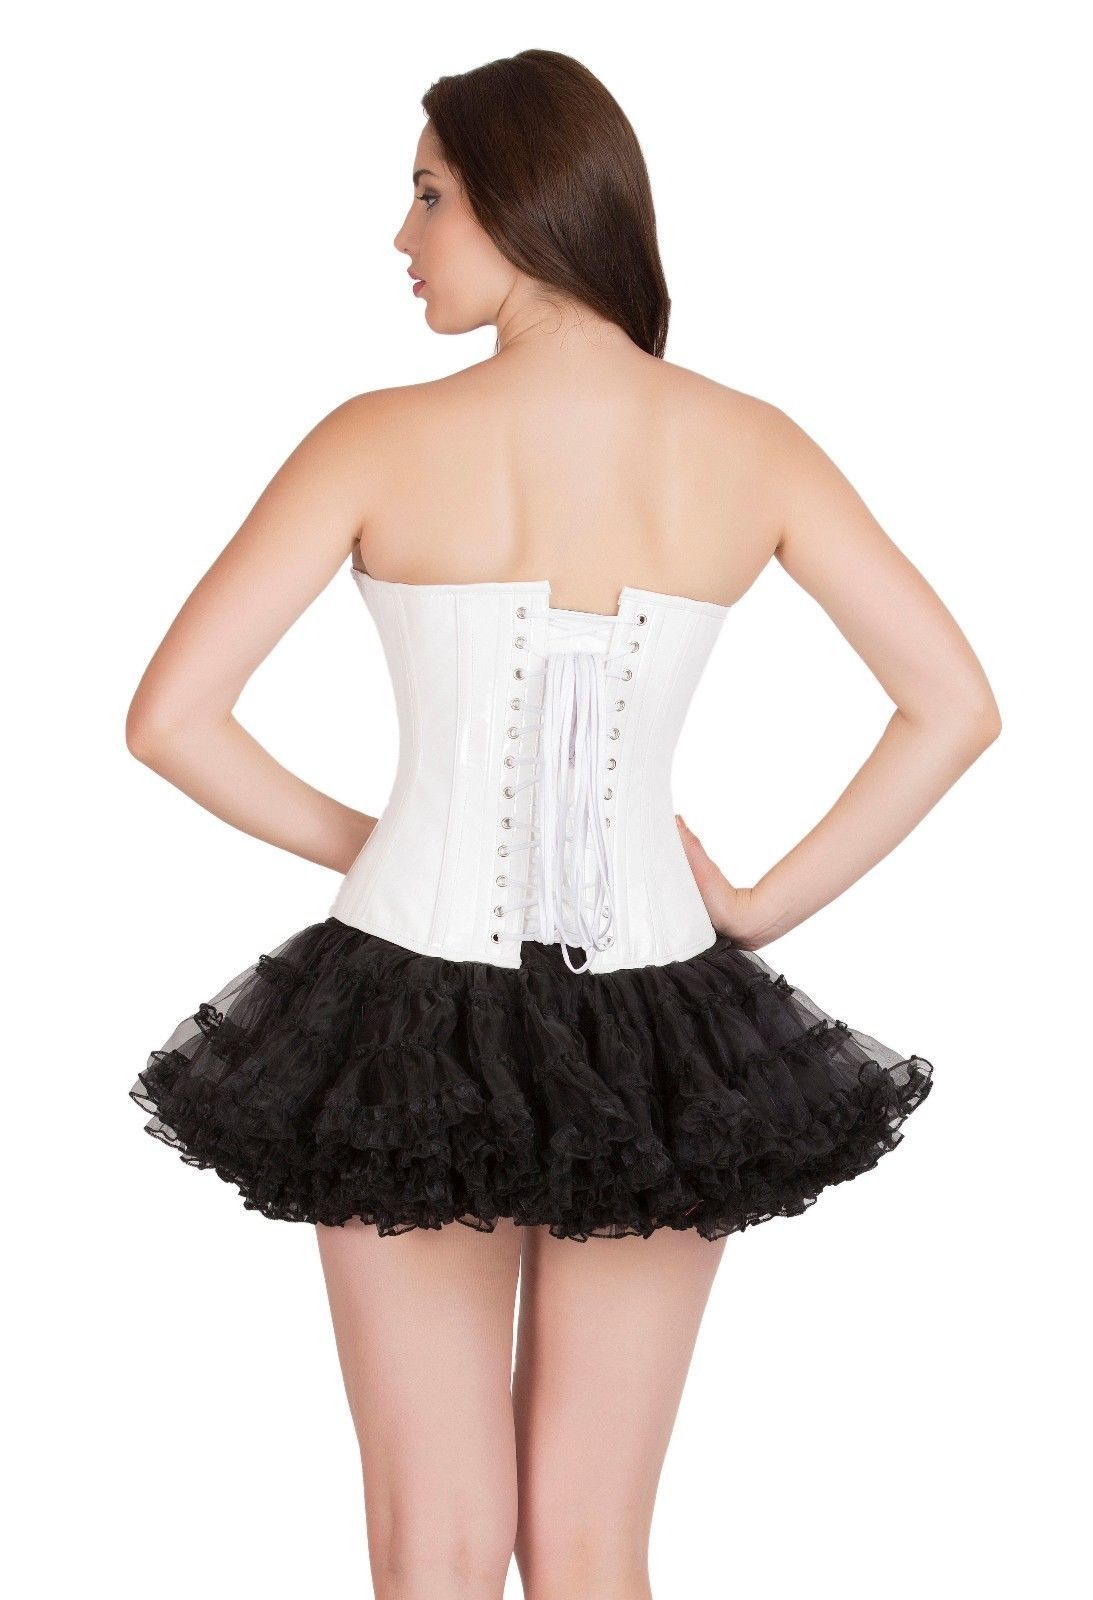 Black Satin & Lace Gothic Steampunk Bustier Waist Training Overbust Corset Top